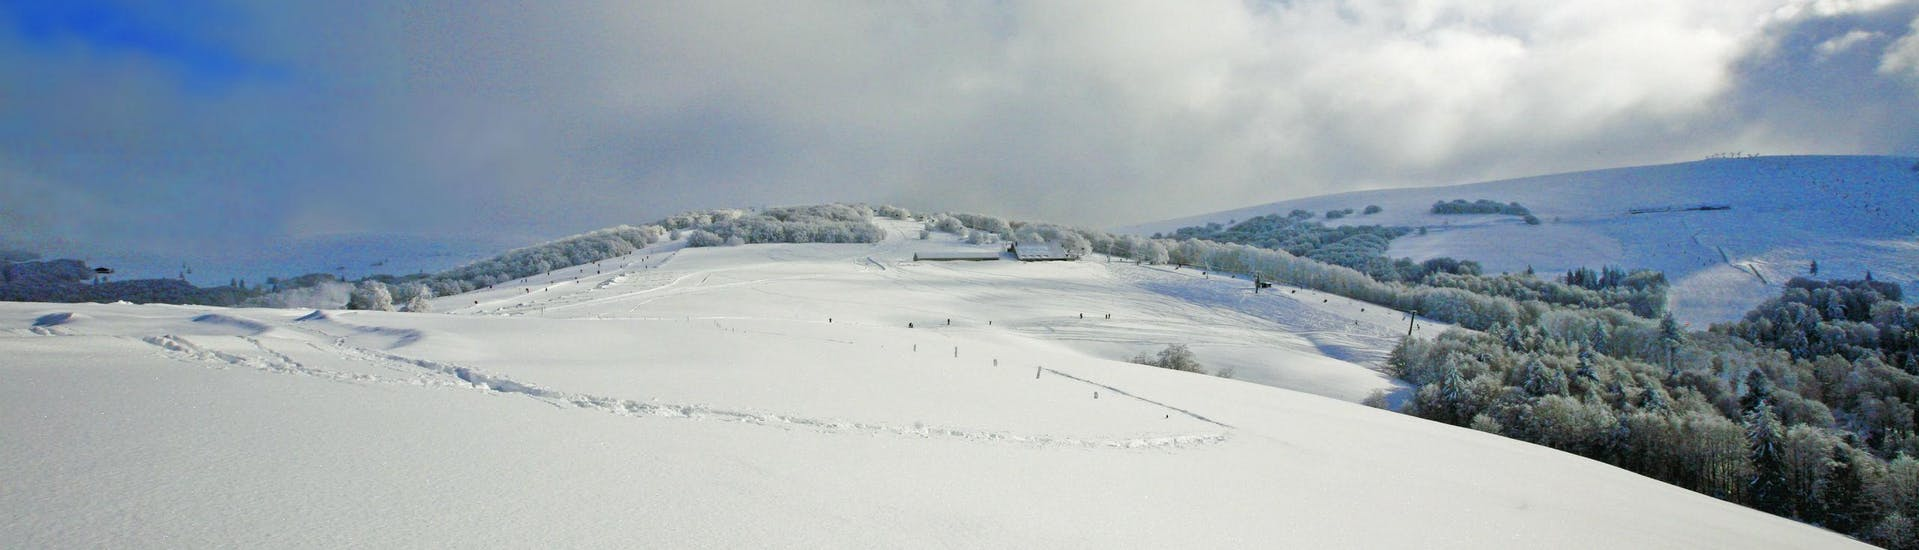 An image of the snow-covered hills in the French department of Vosges, where local ski schools offer a selection of ski lessons.